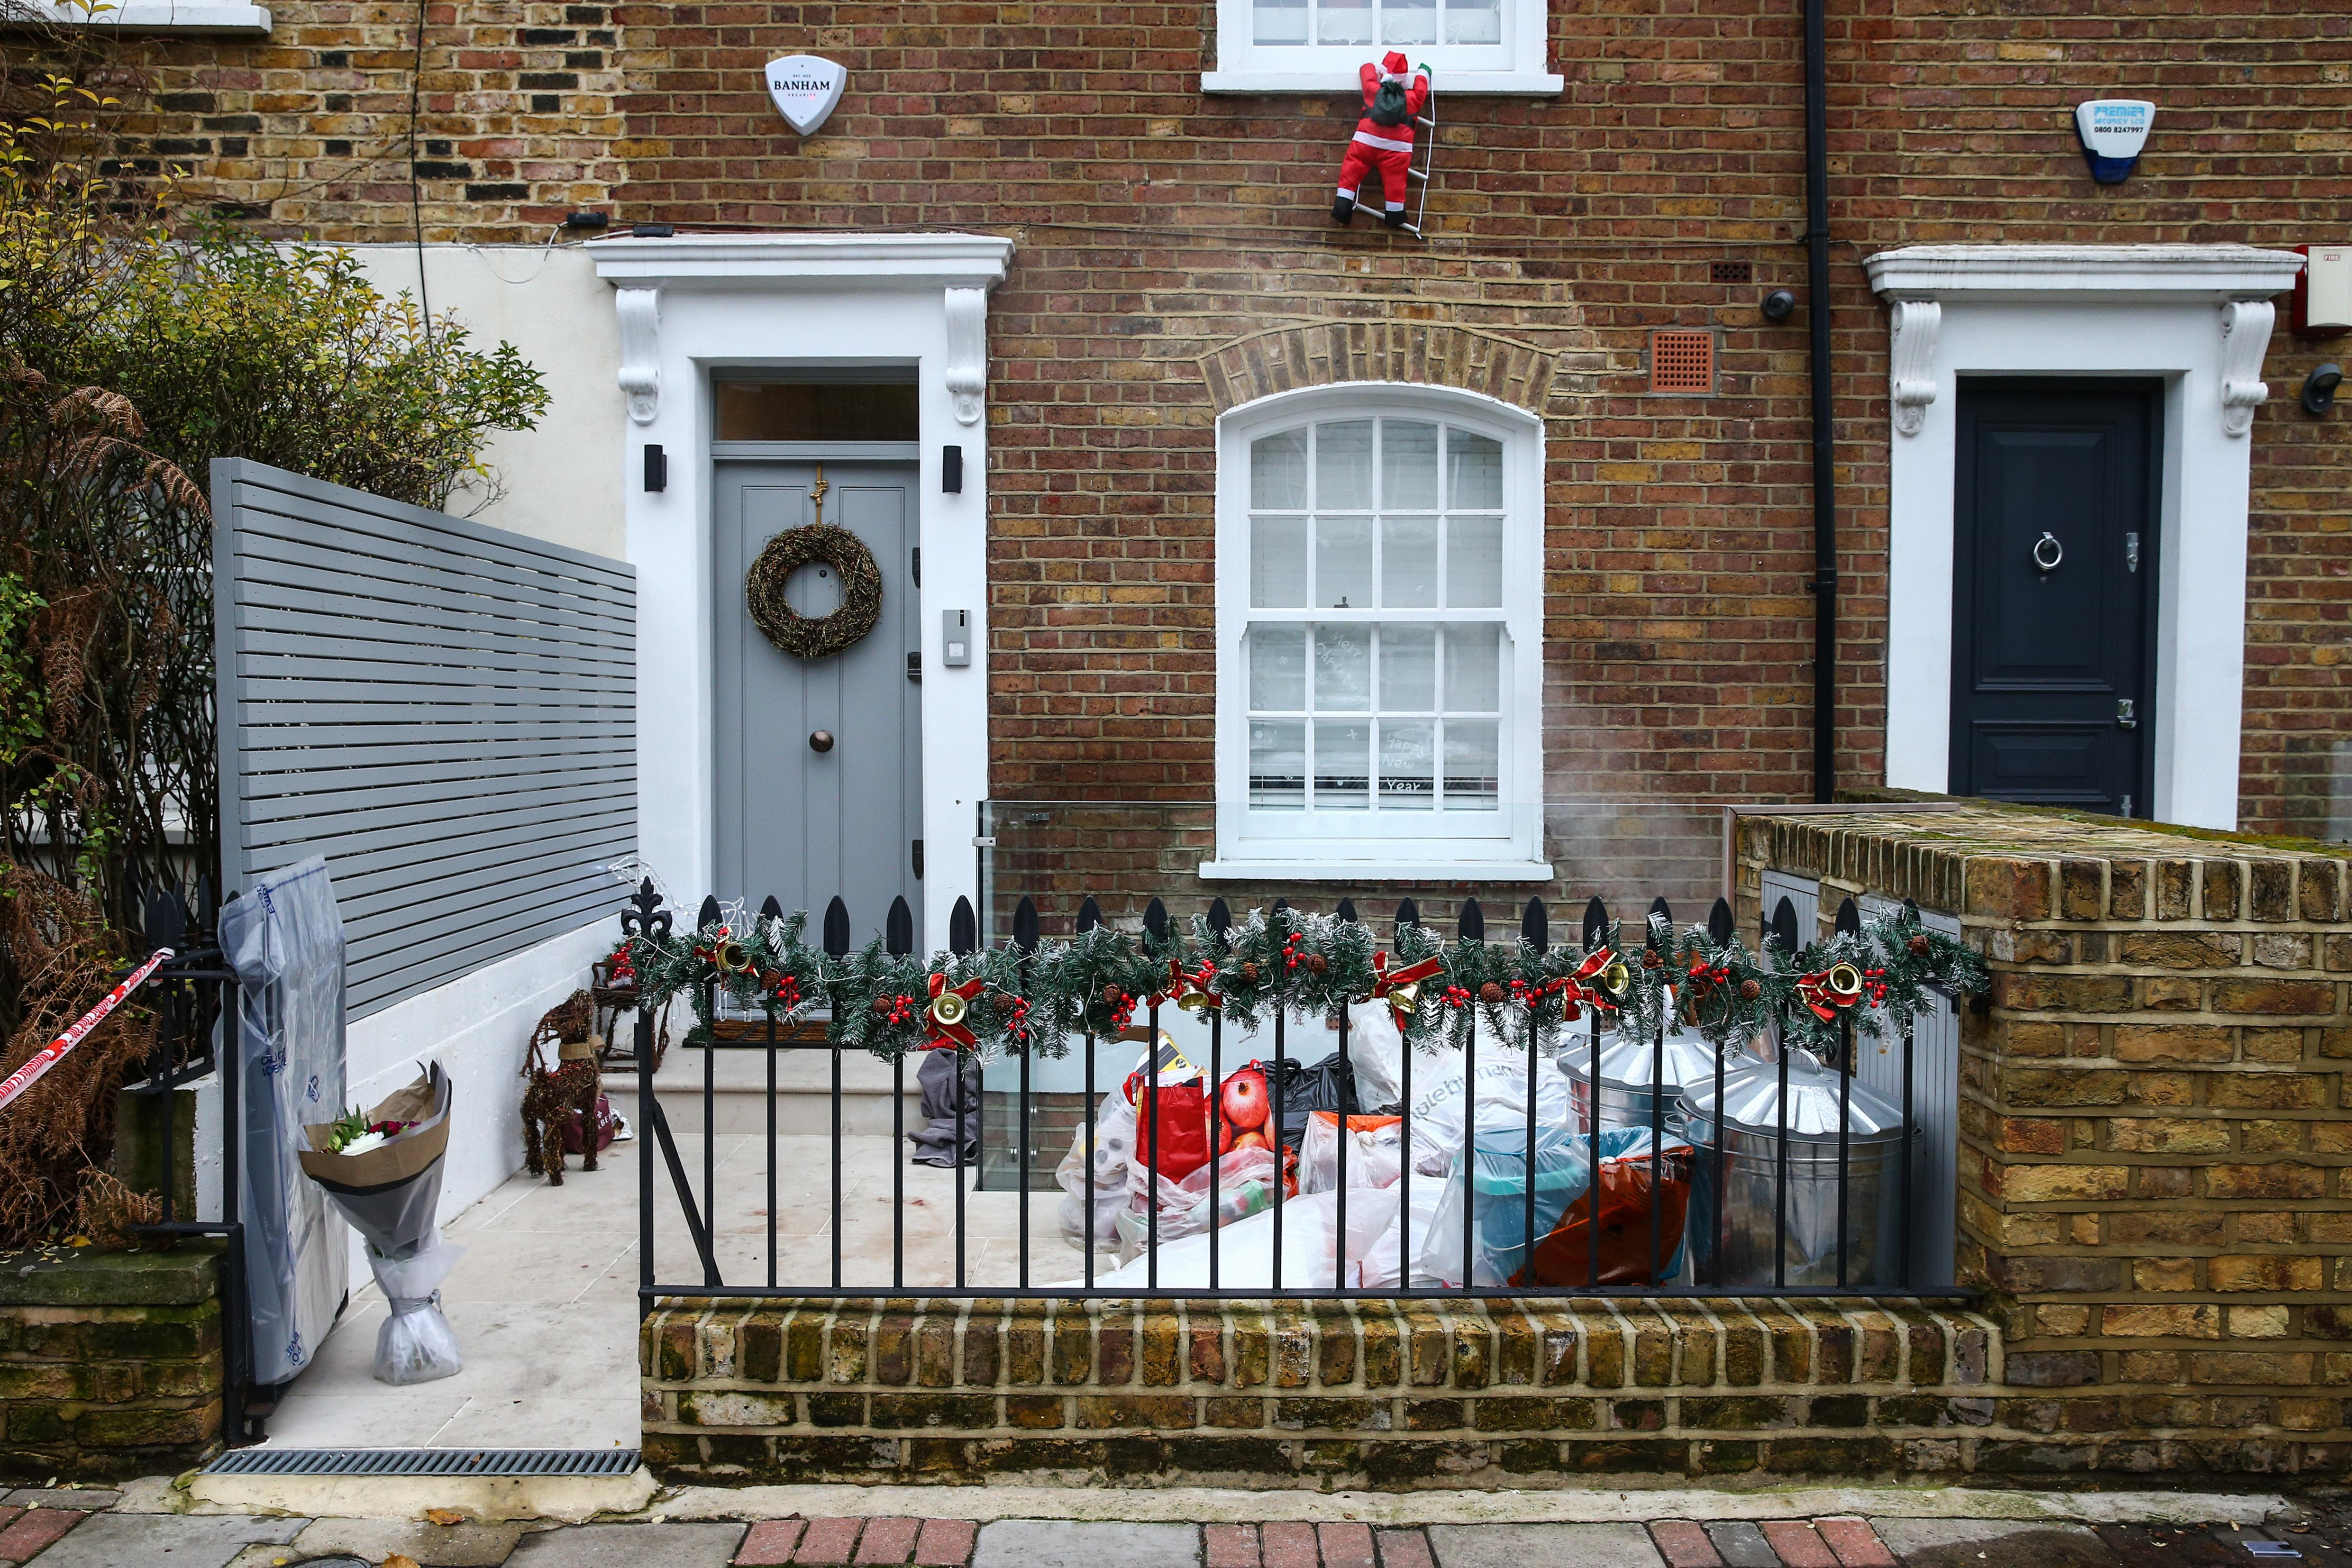 LONDON, ENGLAND - DECEMBER 27: The crime scene where Flamur Beqiri, 36, a father of one, was murdered on December 27, 2019 in south-west London, England. Beqiri was shot dead outside his home on Battersea Church Road on Christmas Eve. The Swedish national is the brother of former Real Housewives of Cheshire star Misse Beqiri. (Photo by Hollie Adams/Getty Images)